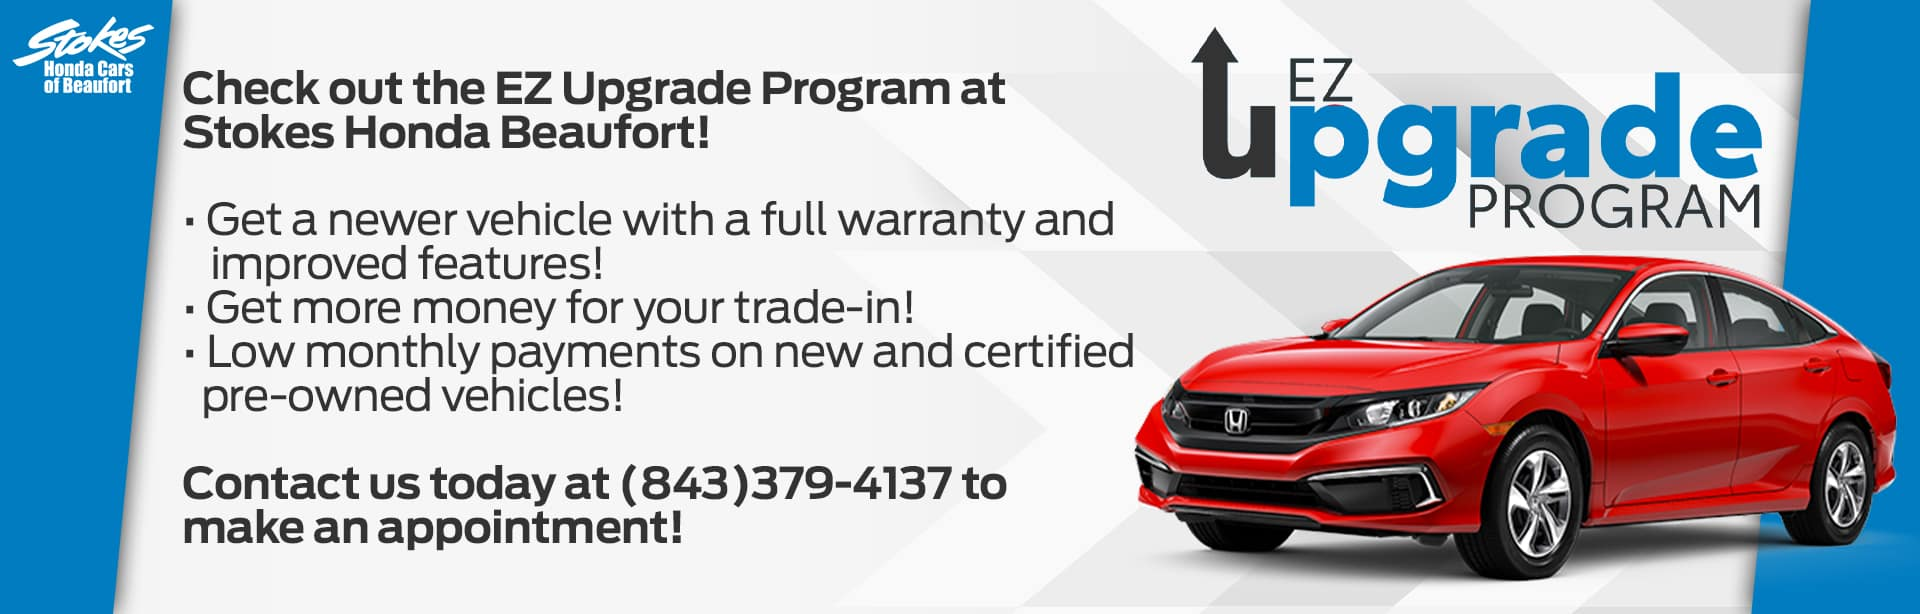 EZ Upgrade Program at Stokes Honda Cars of Beaufort